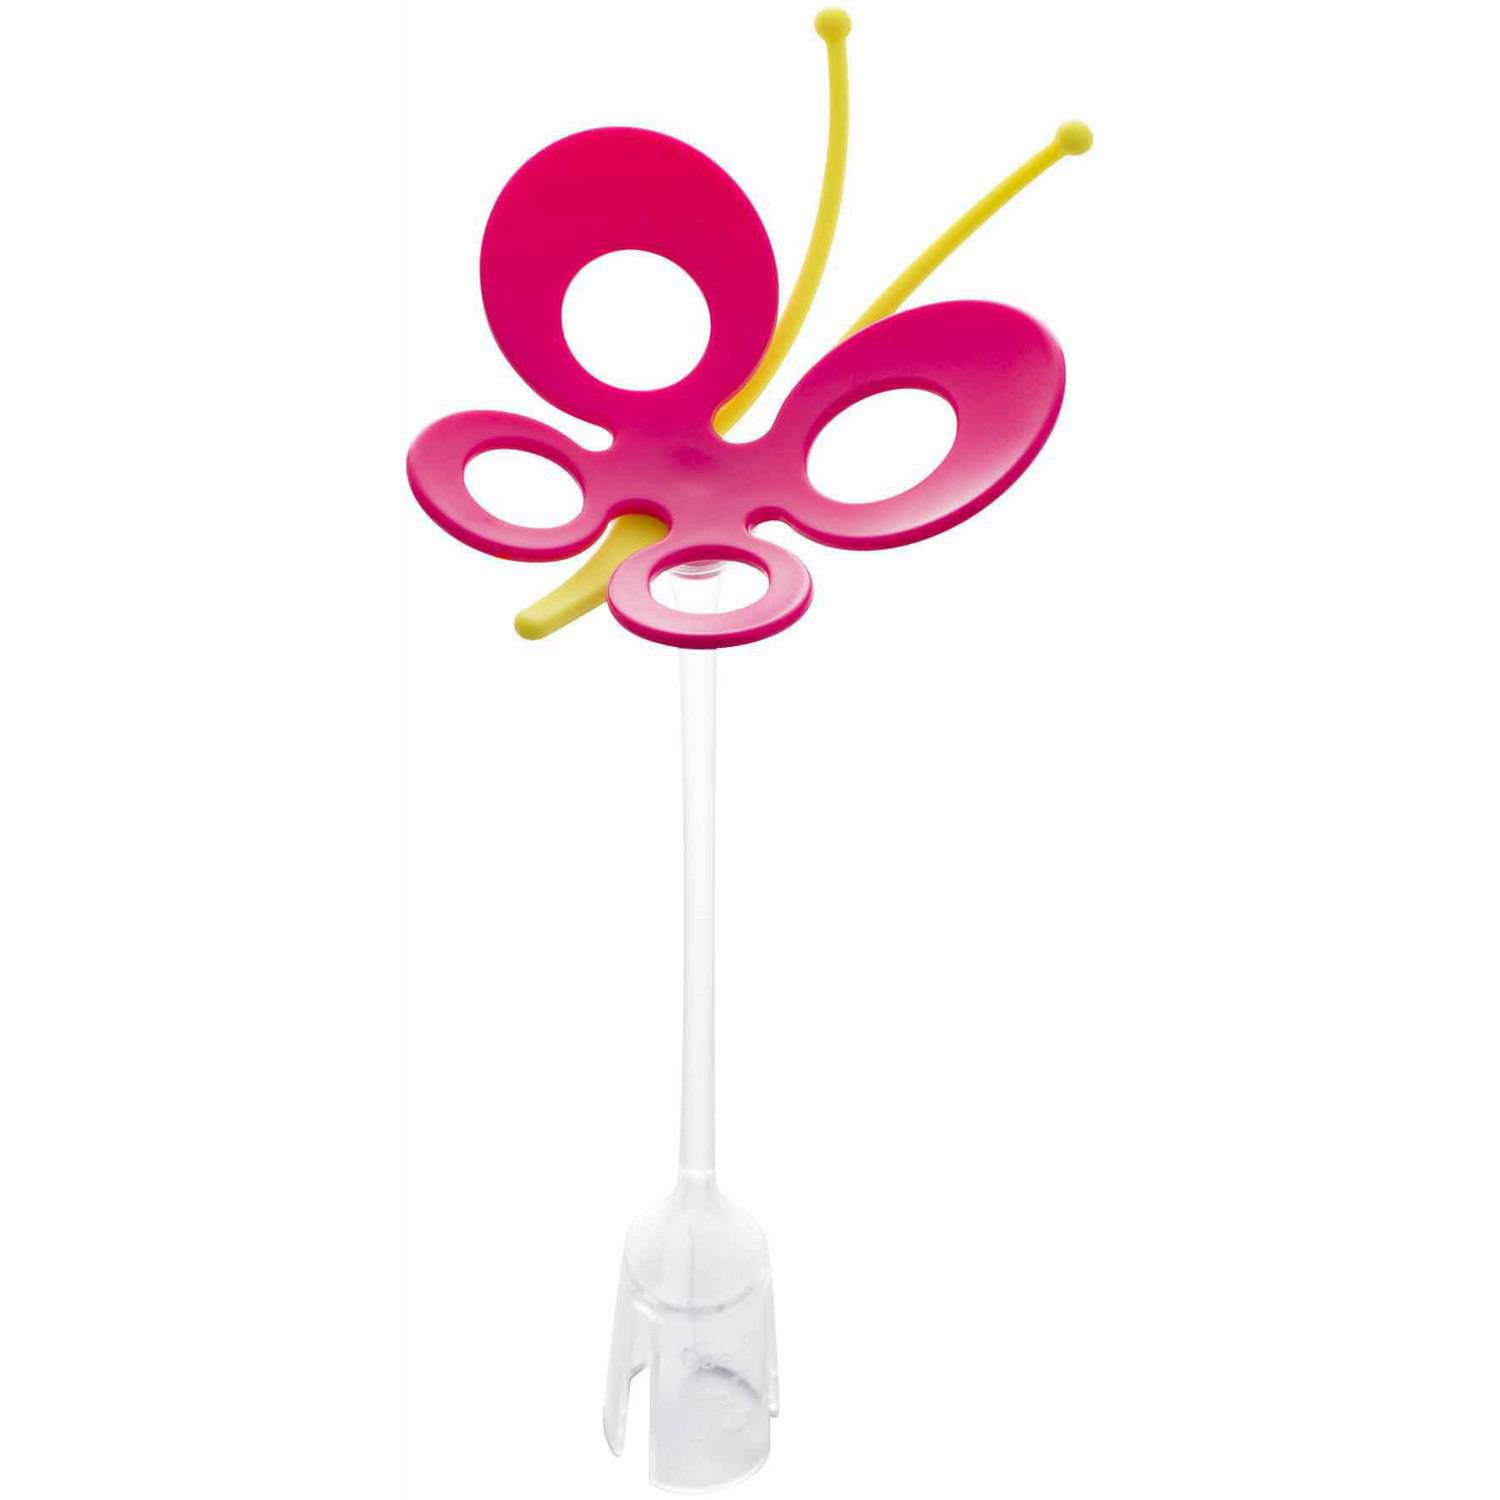 Boon FLY Drying Rack Accessory, Pink Yellow by Boon